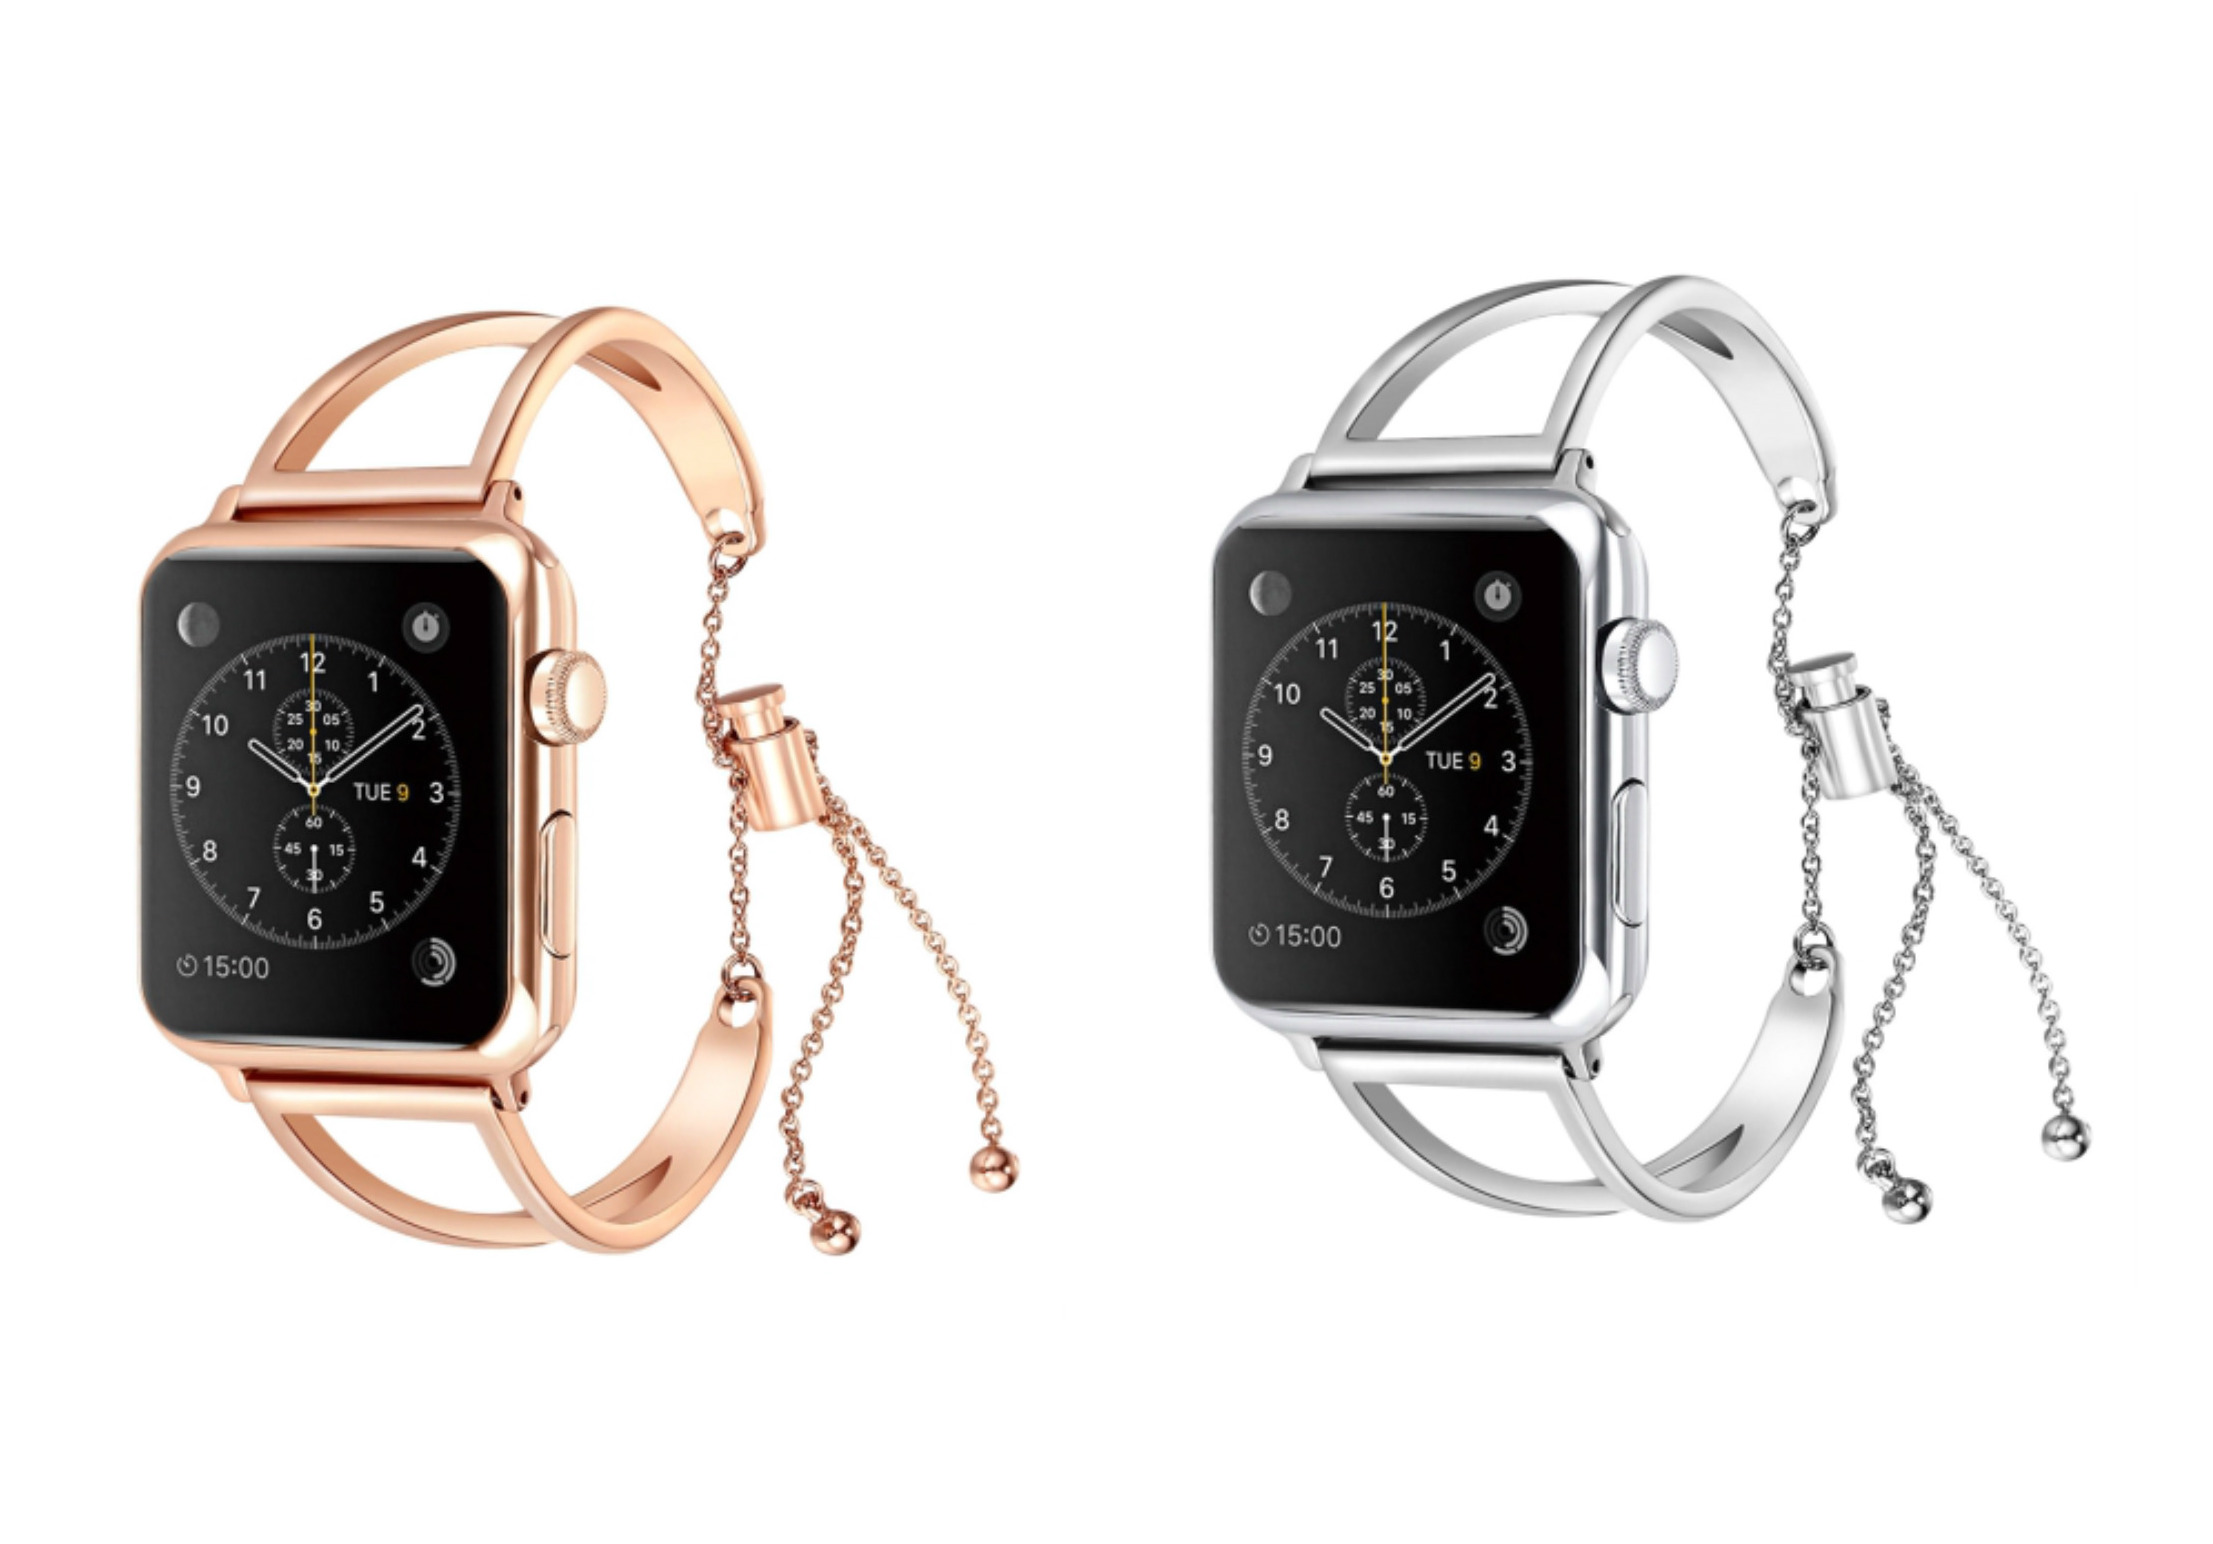 New Letter V Shape Bracelet Metal Wrist Watch Band with Stainless Steel Buckle for Apple Watch Series 3 & 2 & 1 42mm